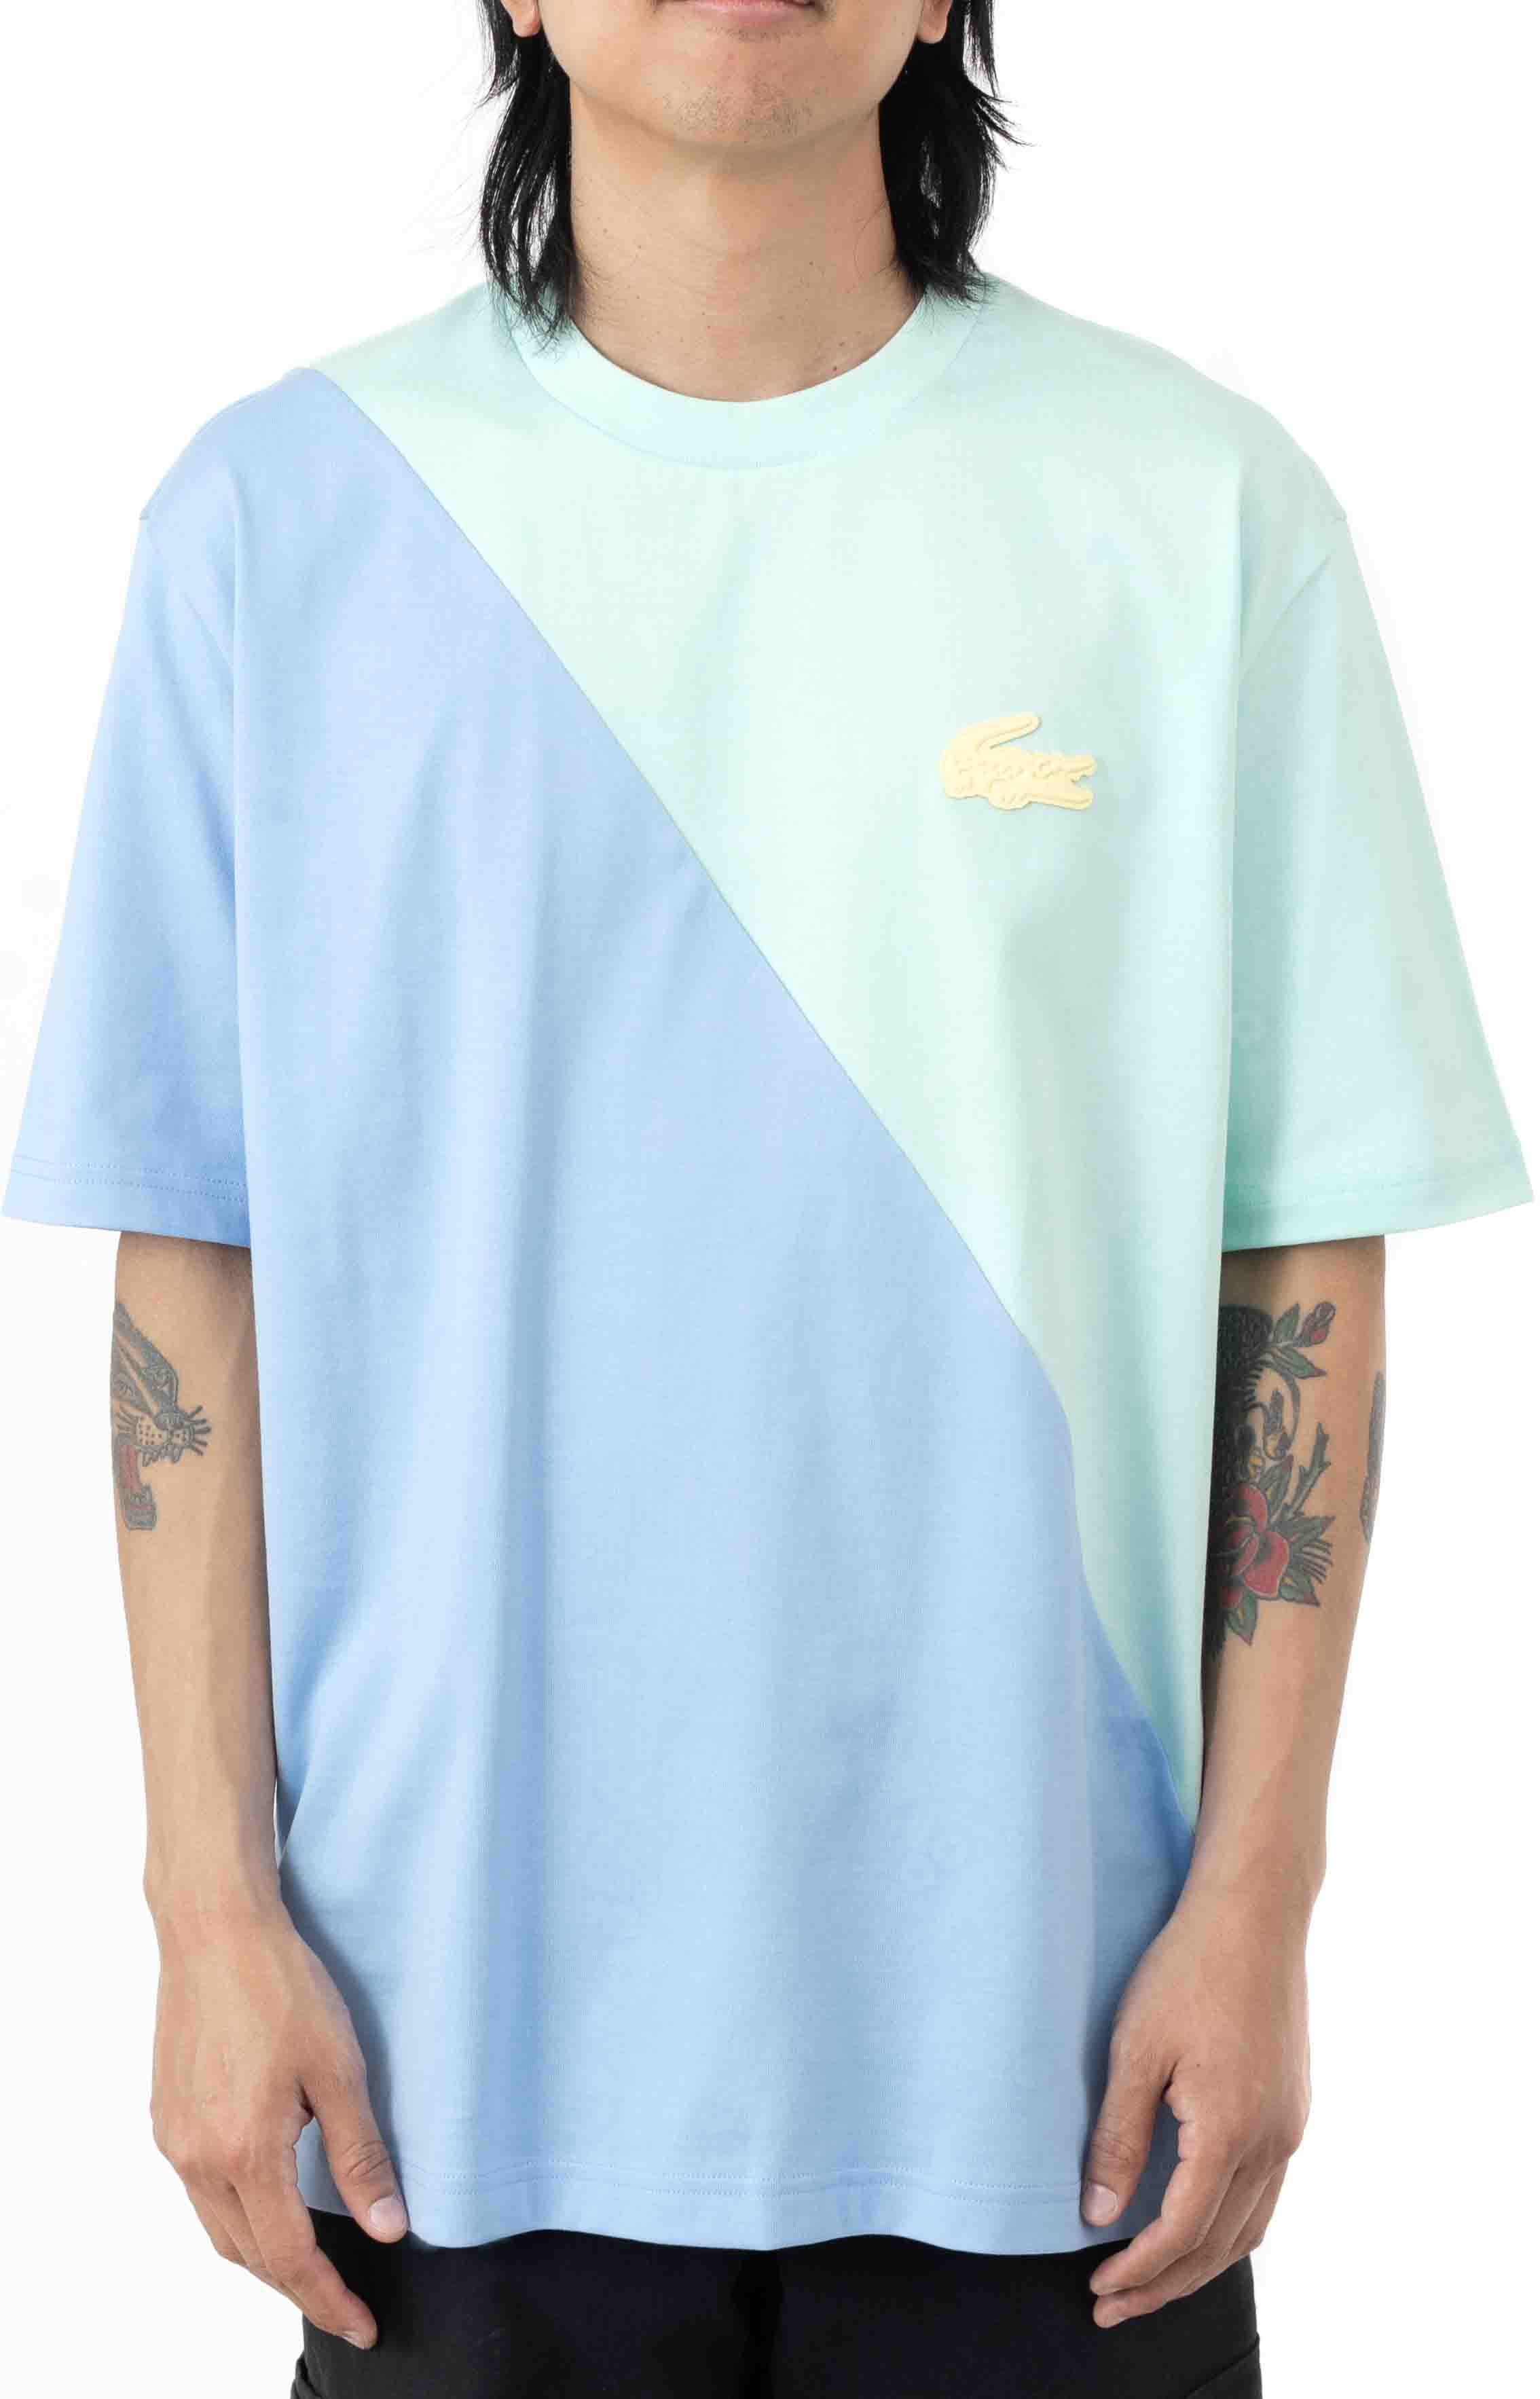 LIVE Loose Fit Colorblock T-Shirt - Turquoise/Blue